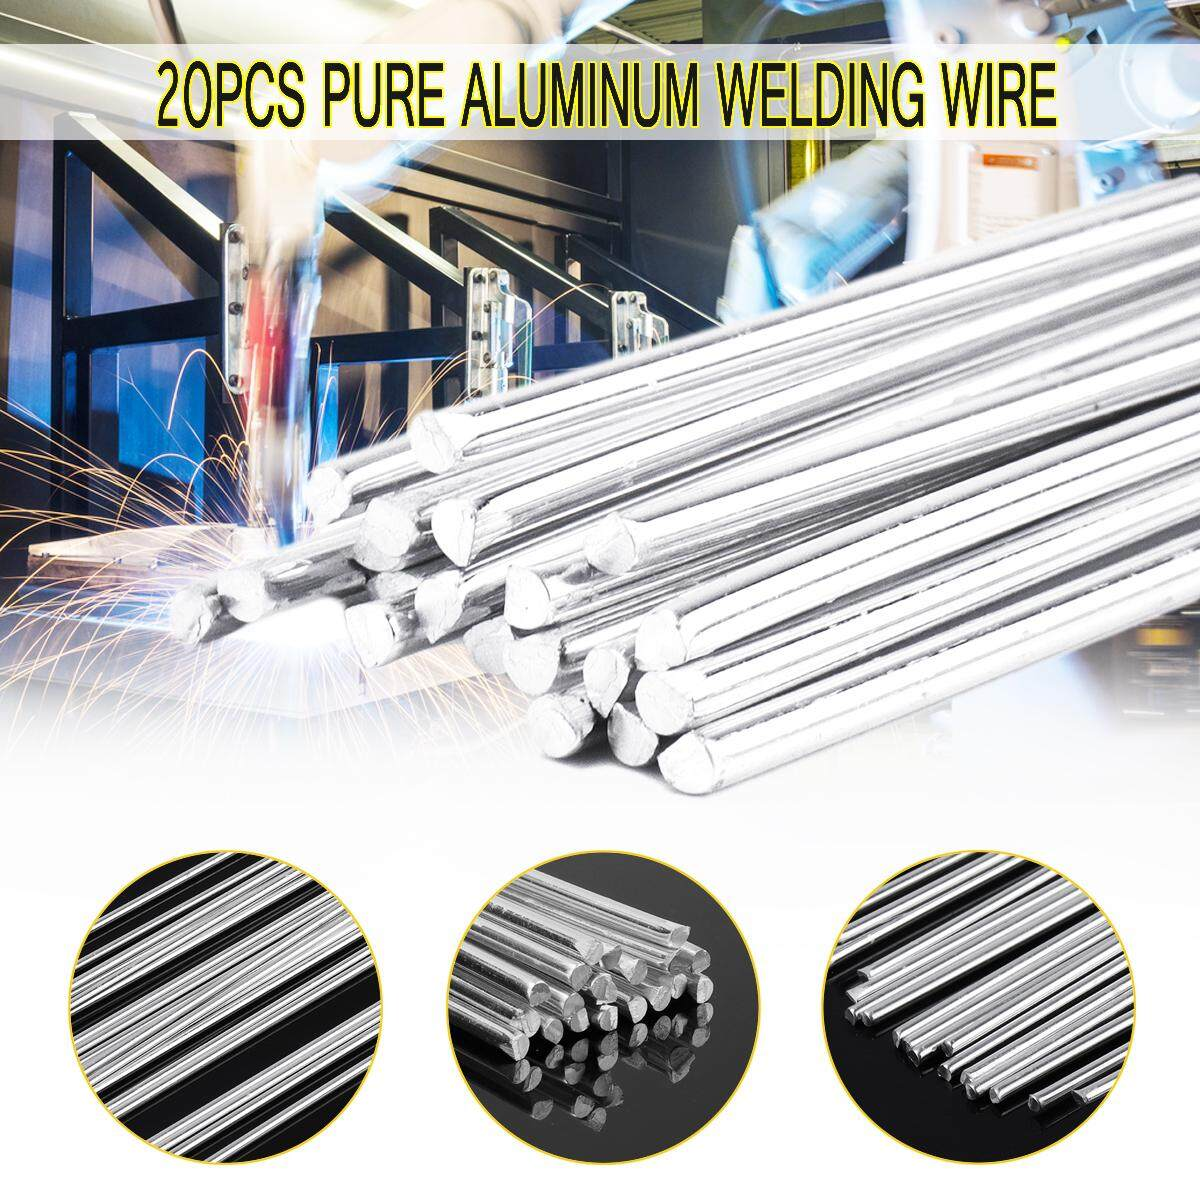 【Free Shipping + Flash Deal】20PCS Low Temperature Aluminum Welding Wire Rod 2.0x500mm No Need Solder Powder